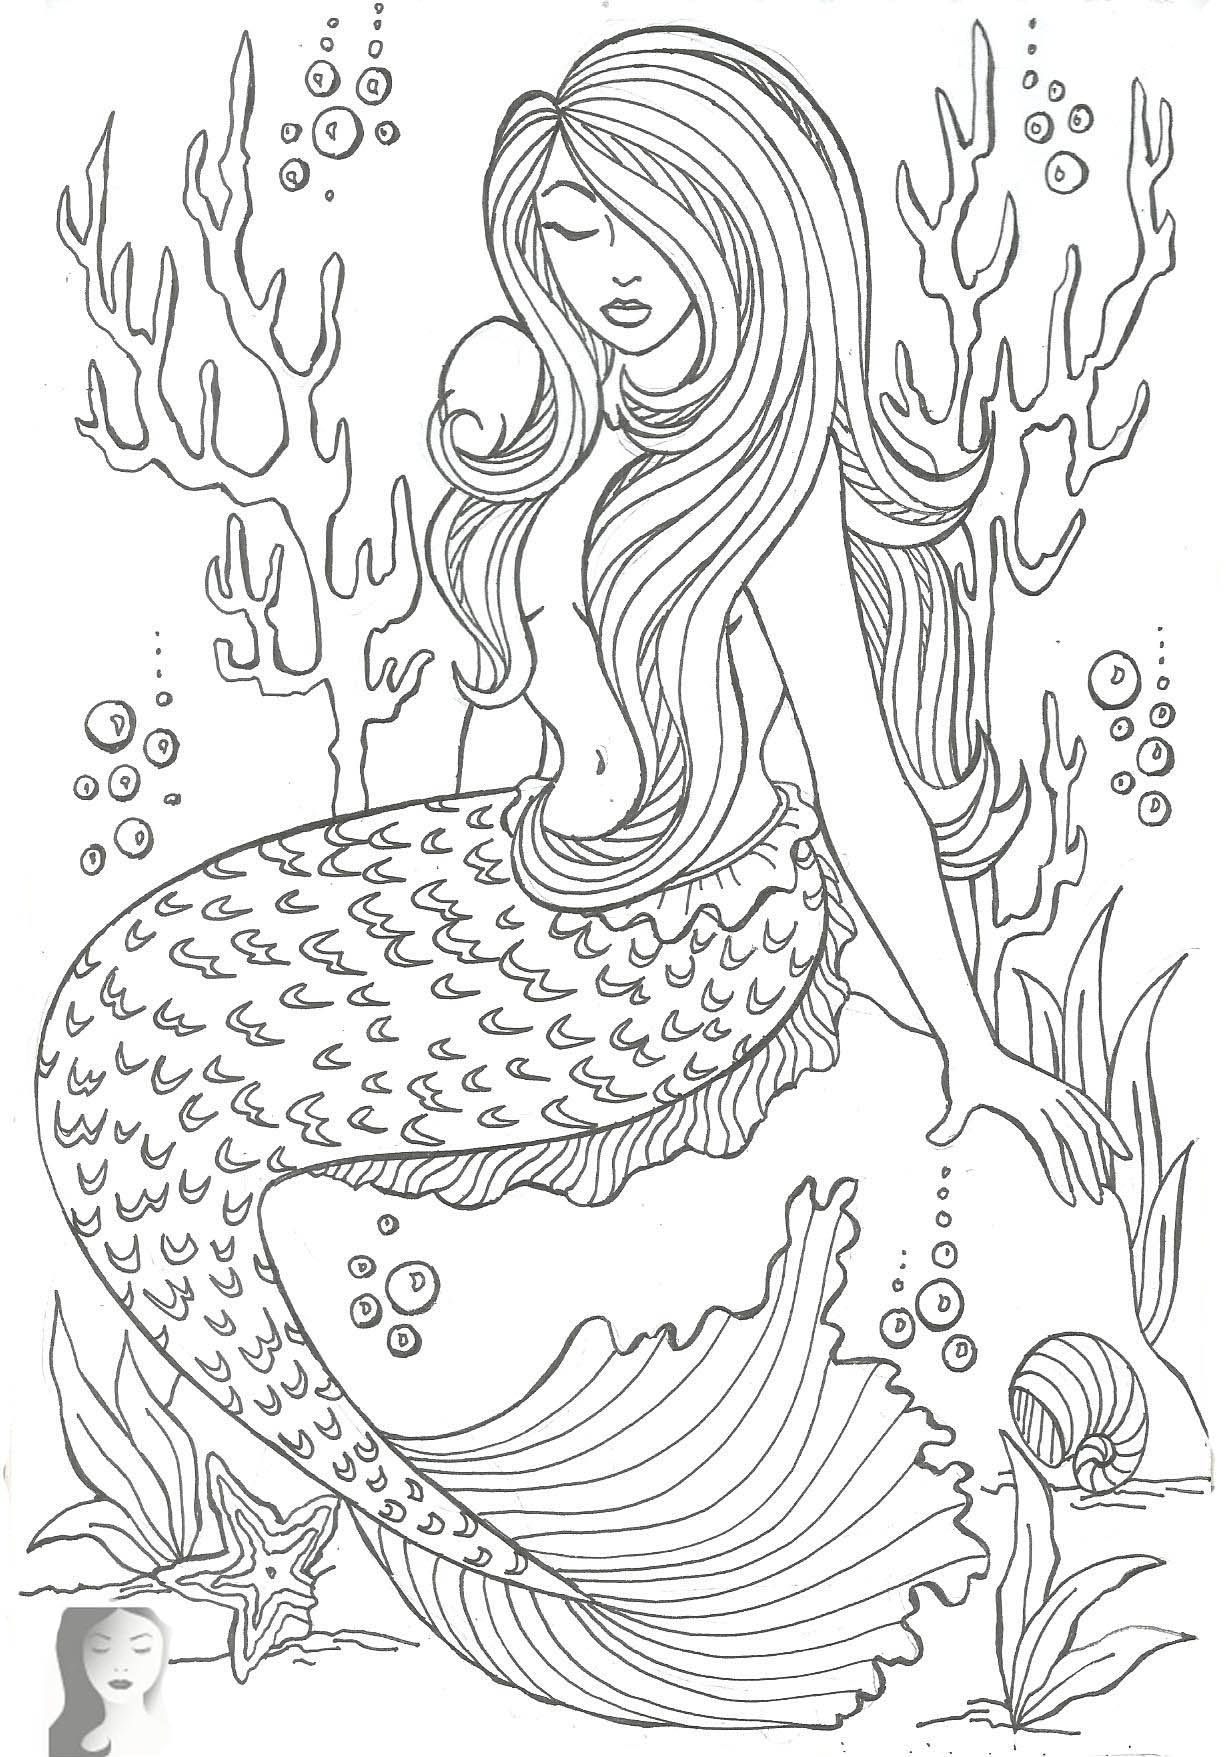 Mermaid Coloring Page Mermaid Coloring Pages For Adults